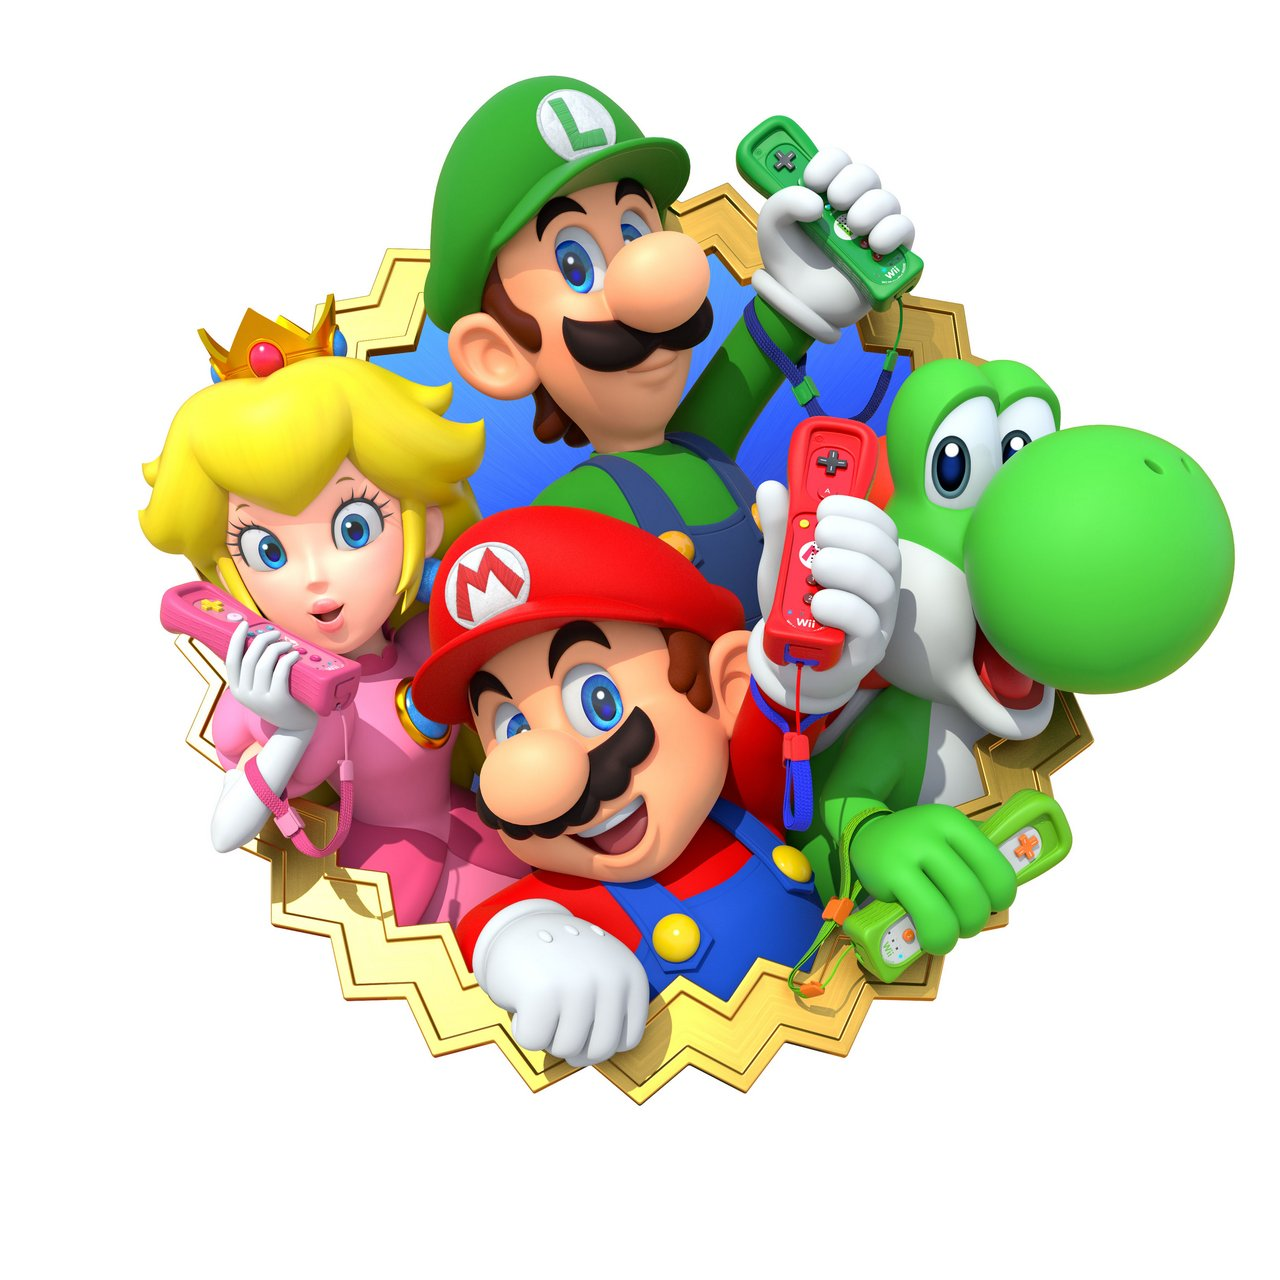 Colored cast - Mario Party 10 Cast With Colored Wii Remotes Artwork Official